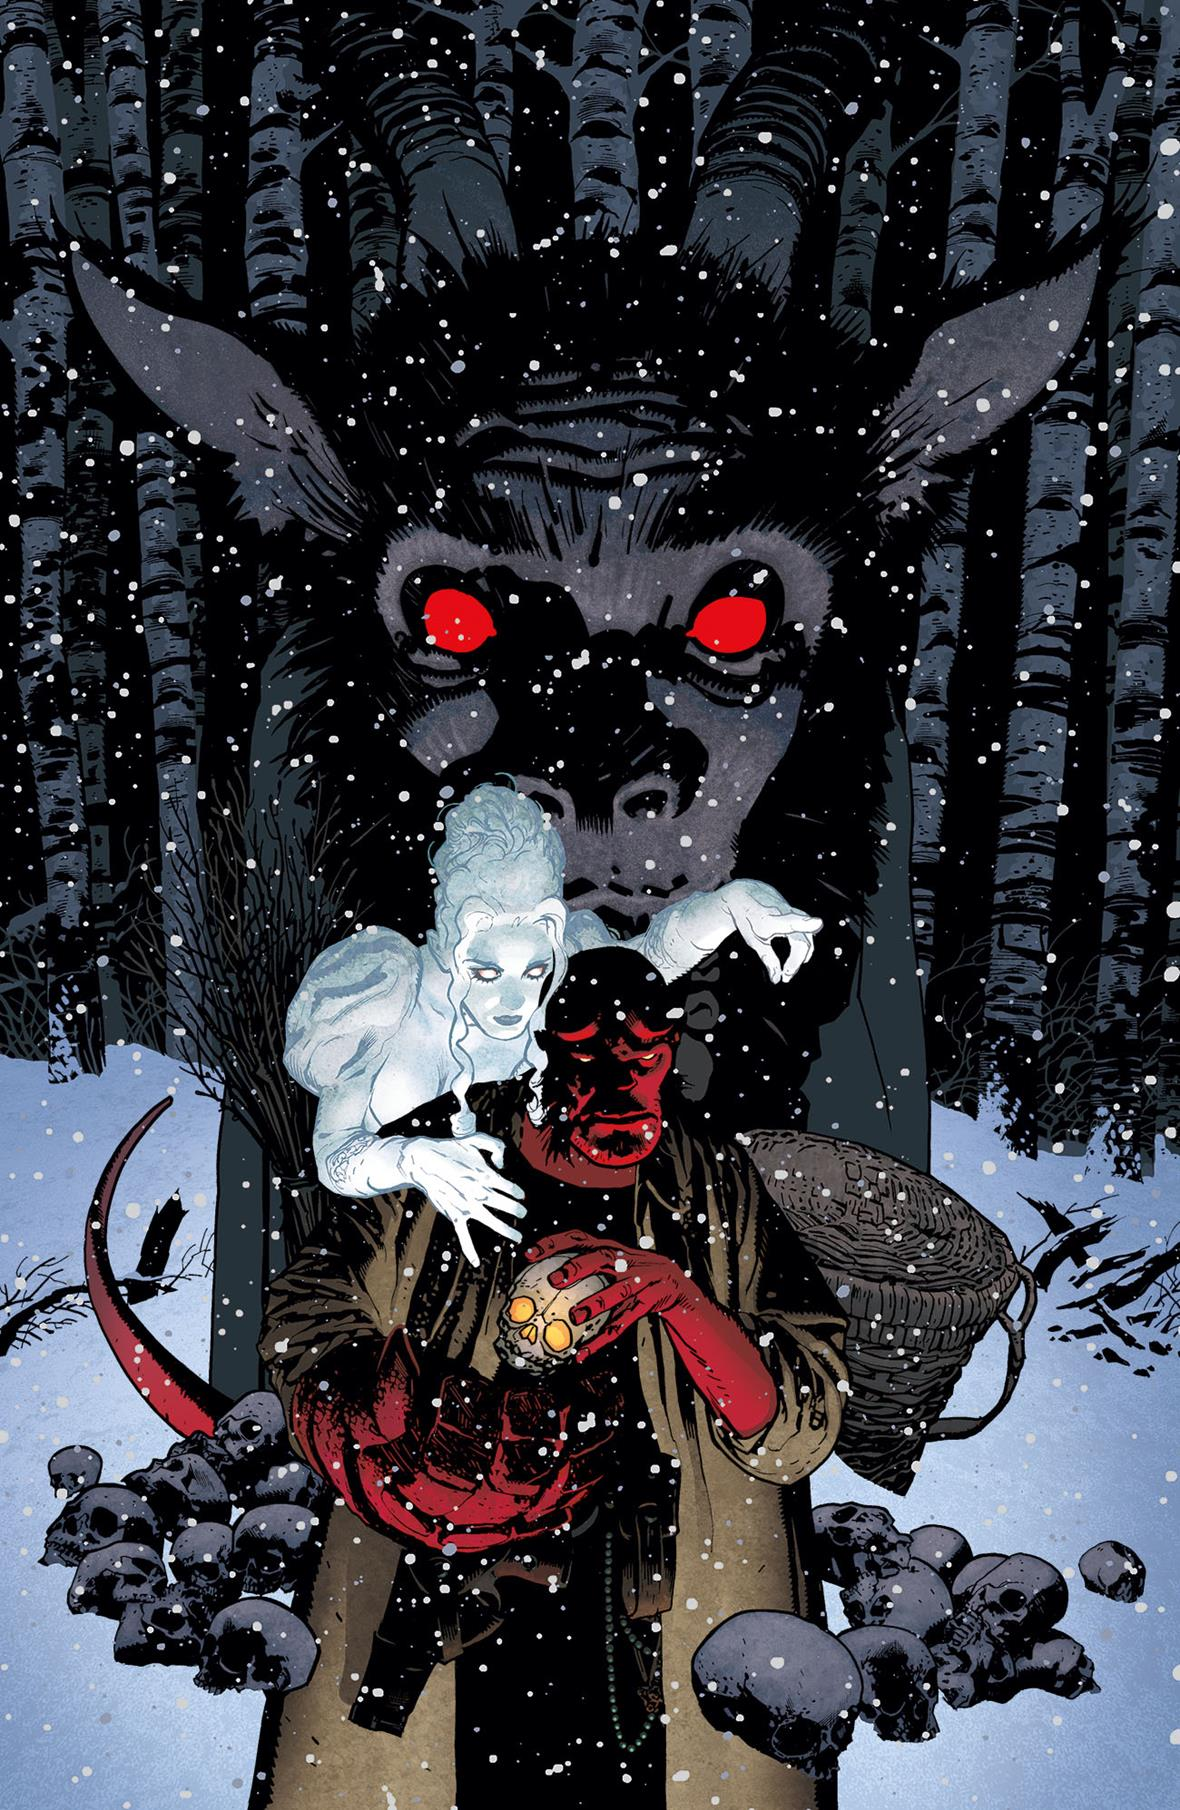 HBYKRMPFCFNL 084043 - Exclusive Preview of Mike Mignola and Adam Hughes' Hellboy: Krampusnacht